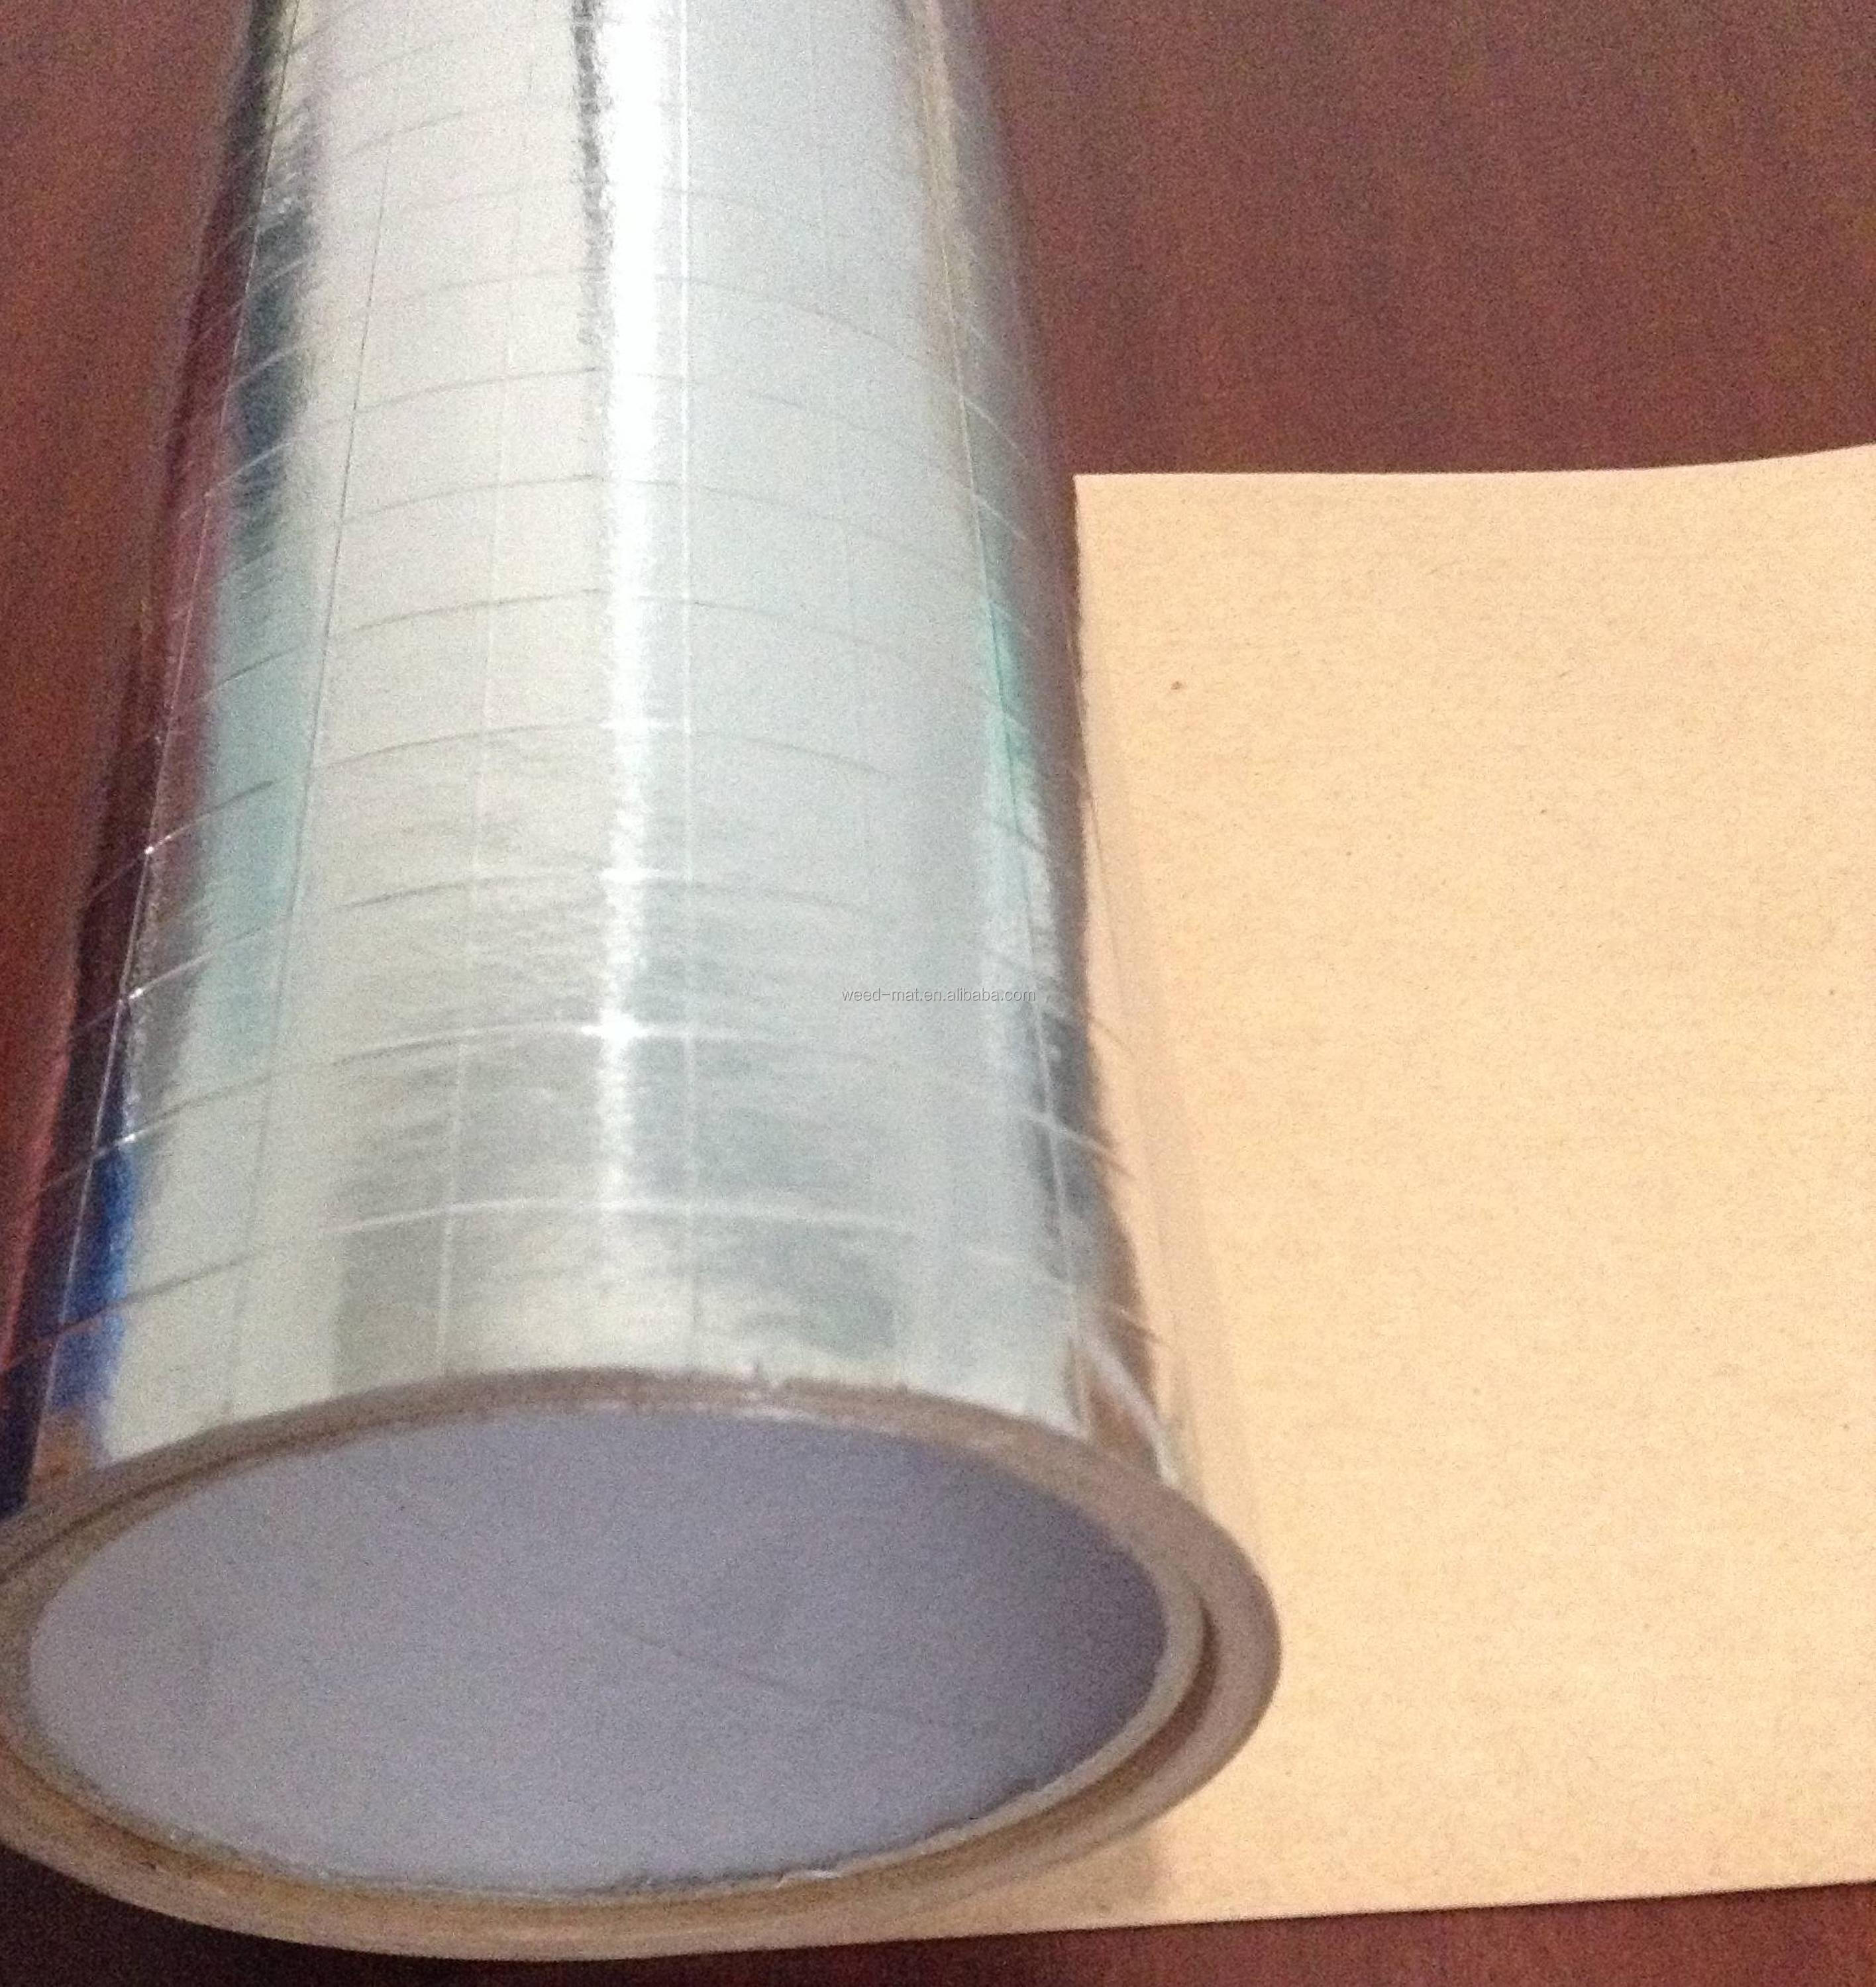 silver FSK aluminum foil scrim kraft facing thermal insulation roll house wrap